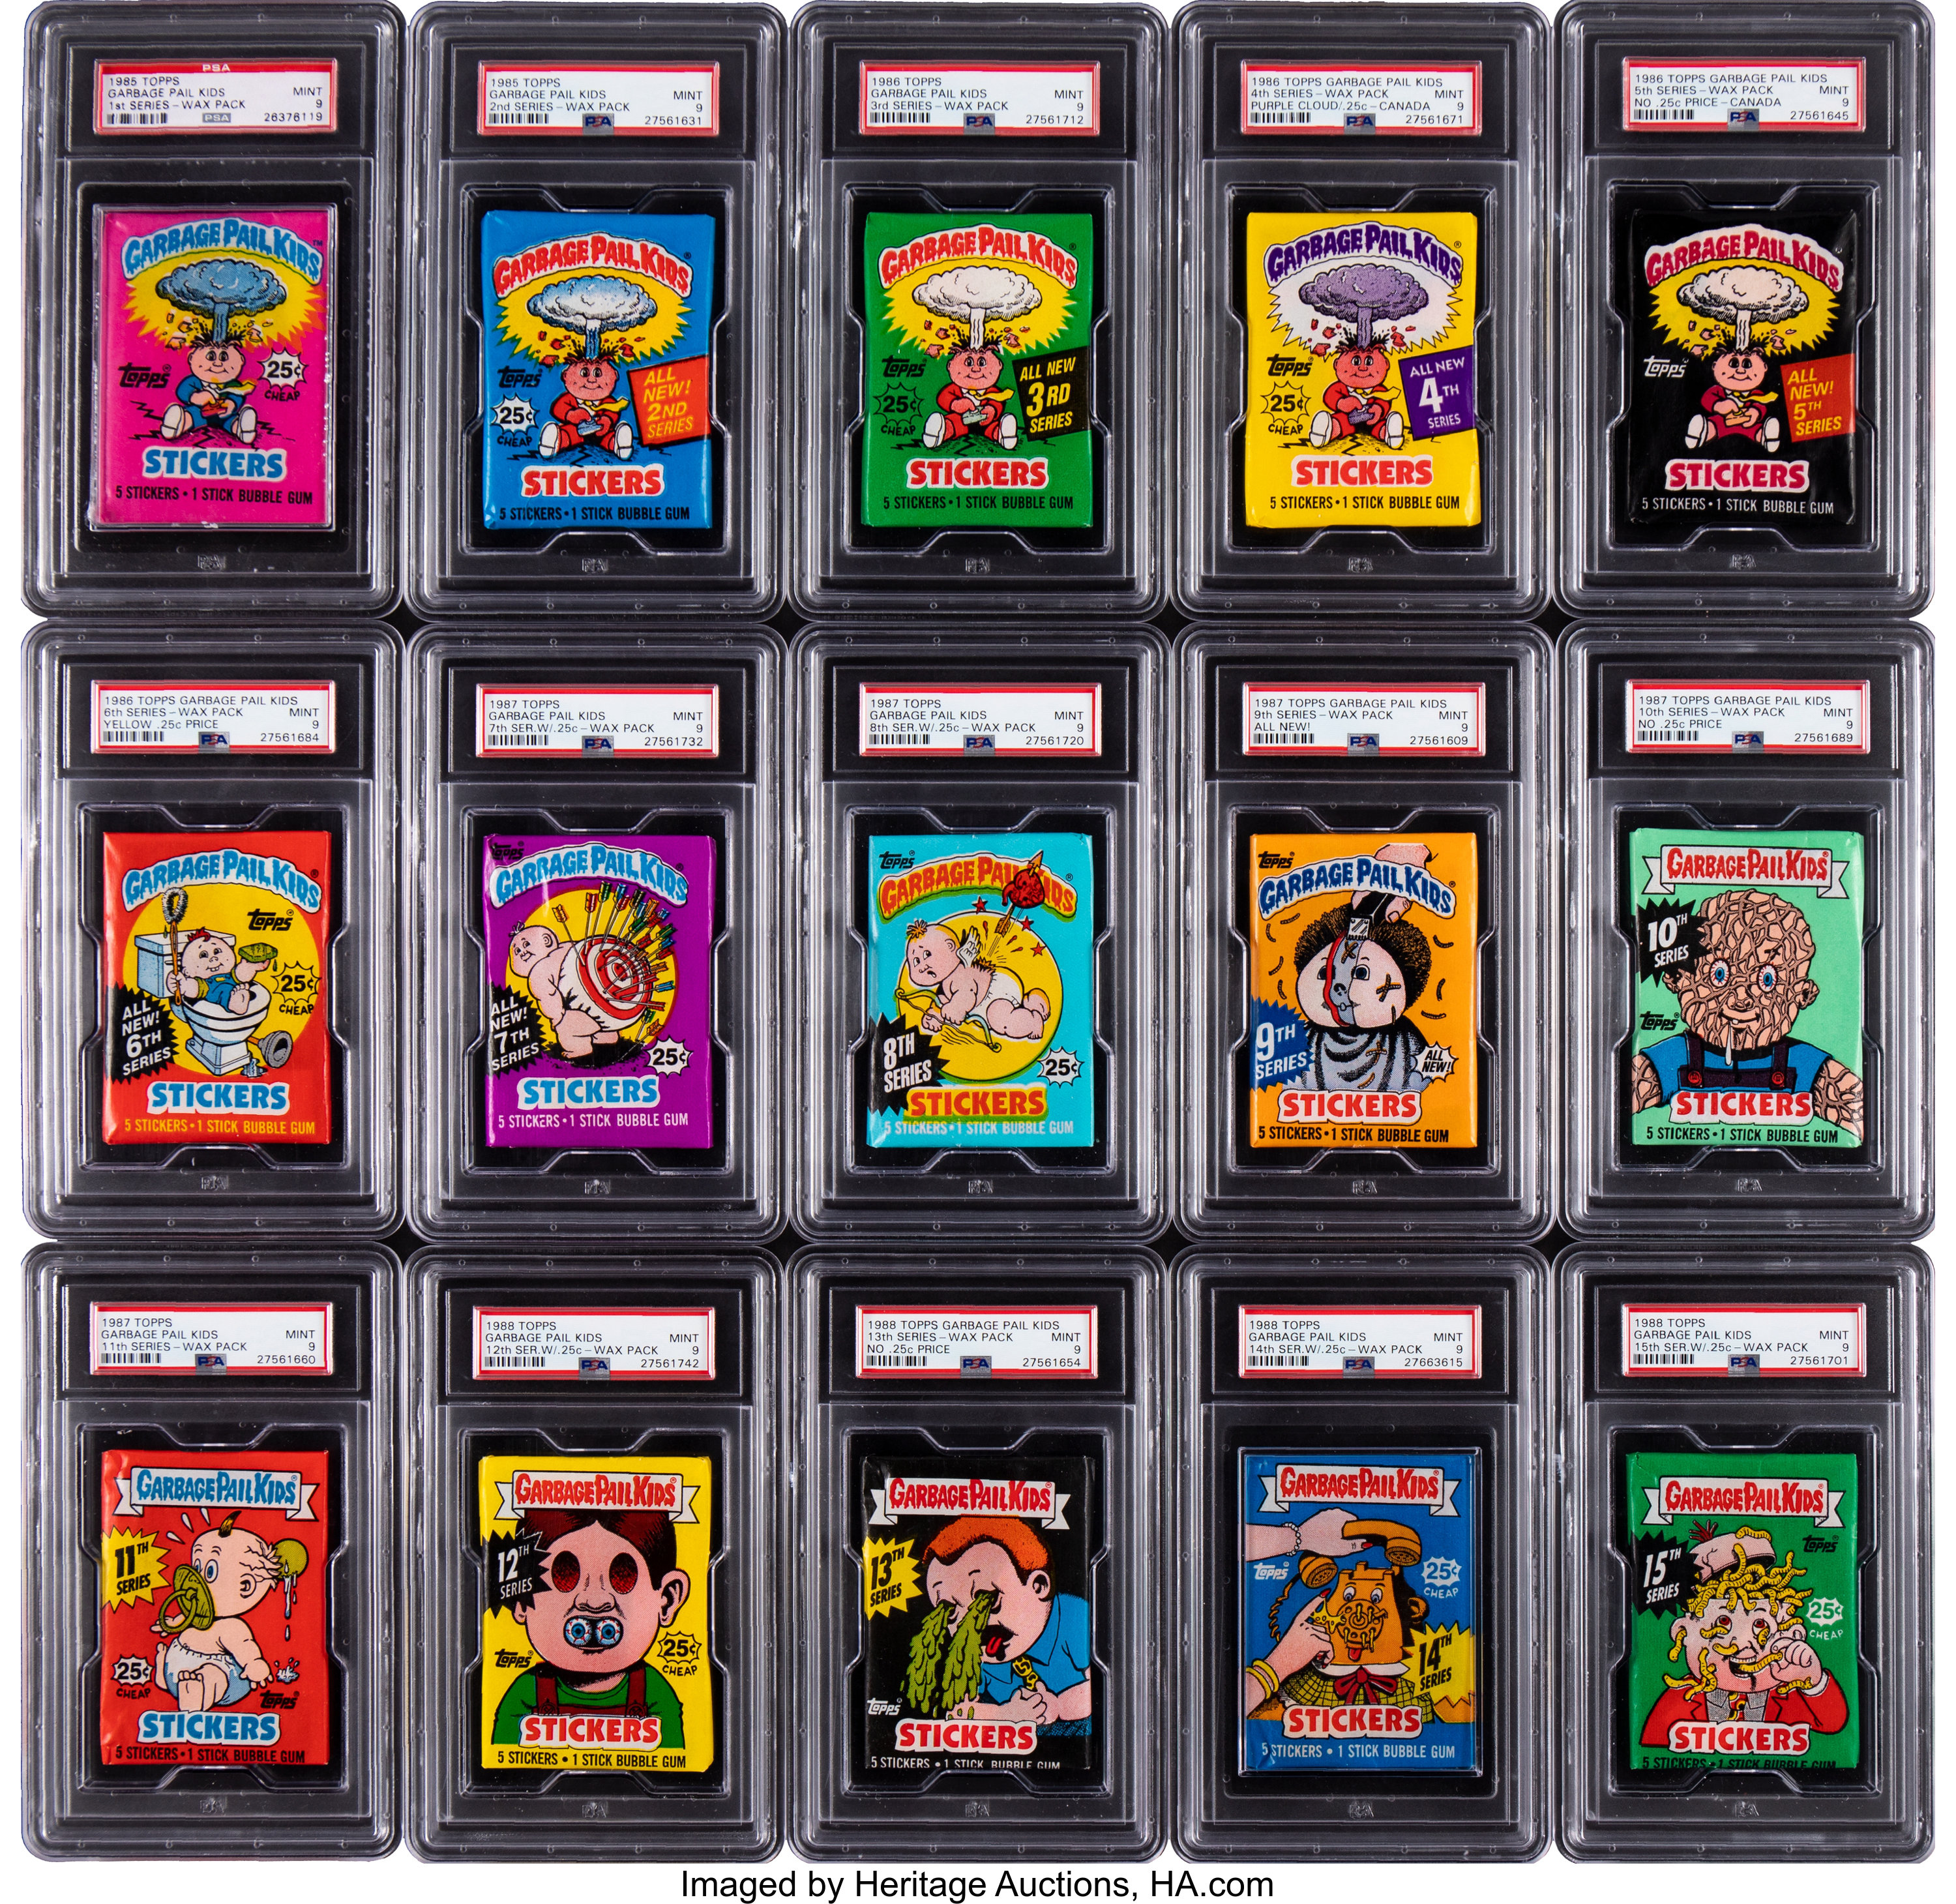 1985 88 Topps Garbage Pail Kids Psa Mint 9 Wax Pack Complete Run Lot 56378 Heritage Auctions